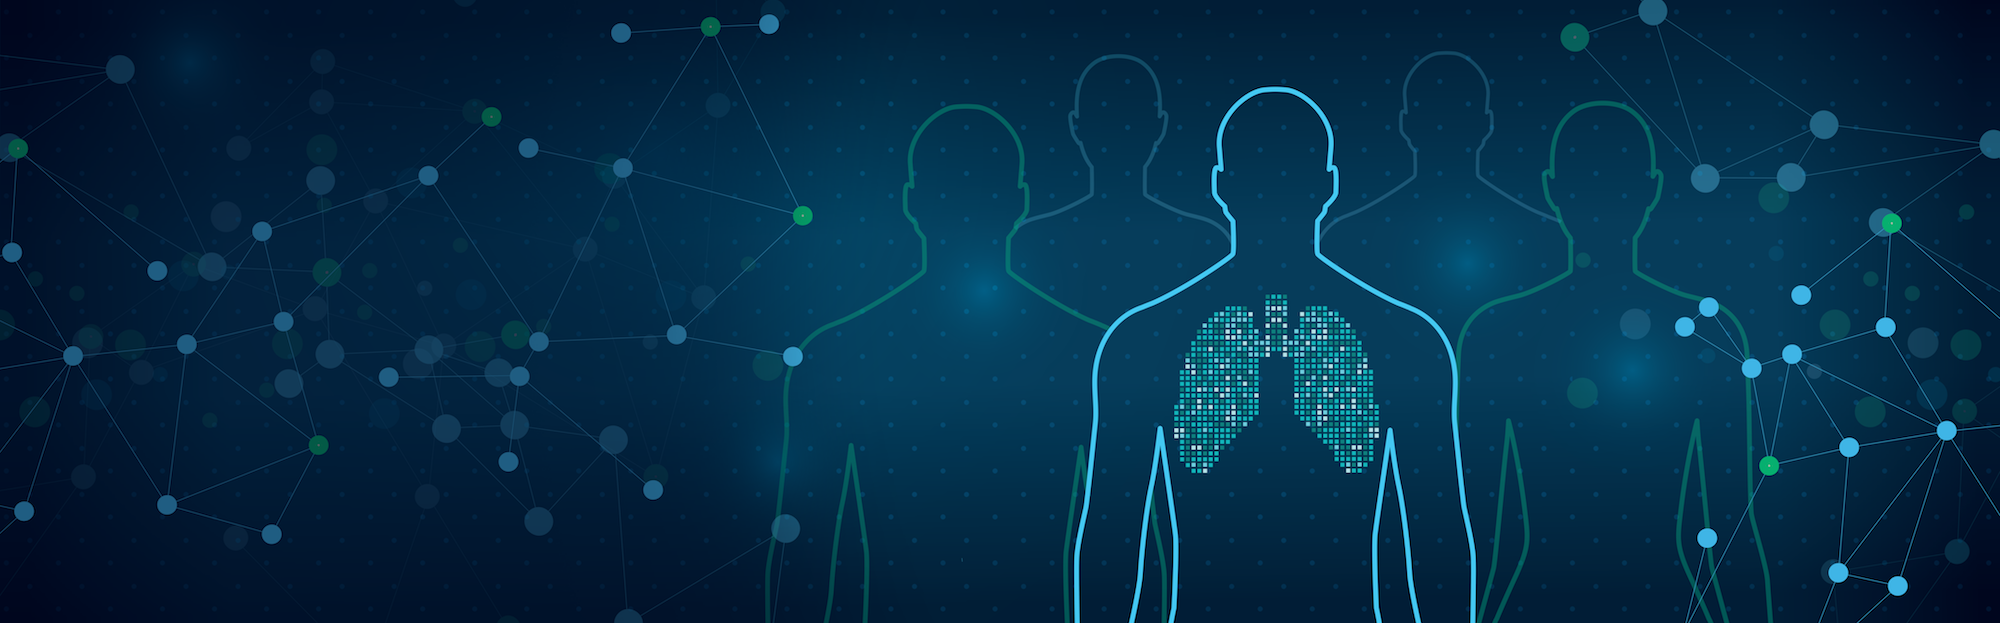 TURNING MEDICAL IMAGES INTO LIFE-CHANGING INSIGHTS   Using machine learning and AI, the average image can become exceptional personalized medicine.   Learn More